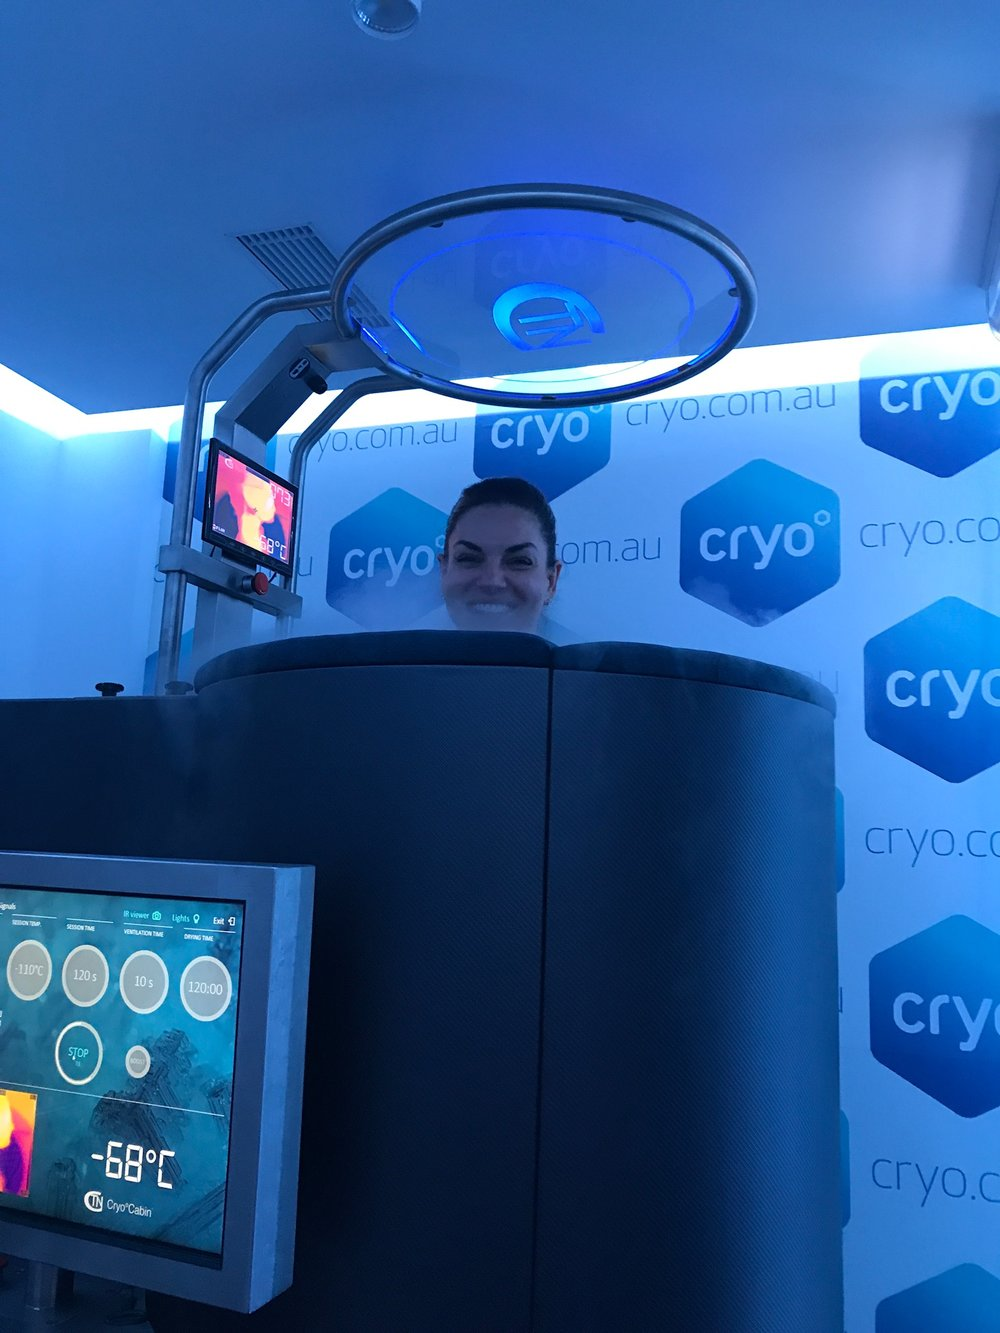 Nicole O'Neil at CRYO Edgecliff - What It's Like to Have a Cryotherapy Treatment